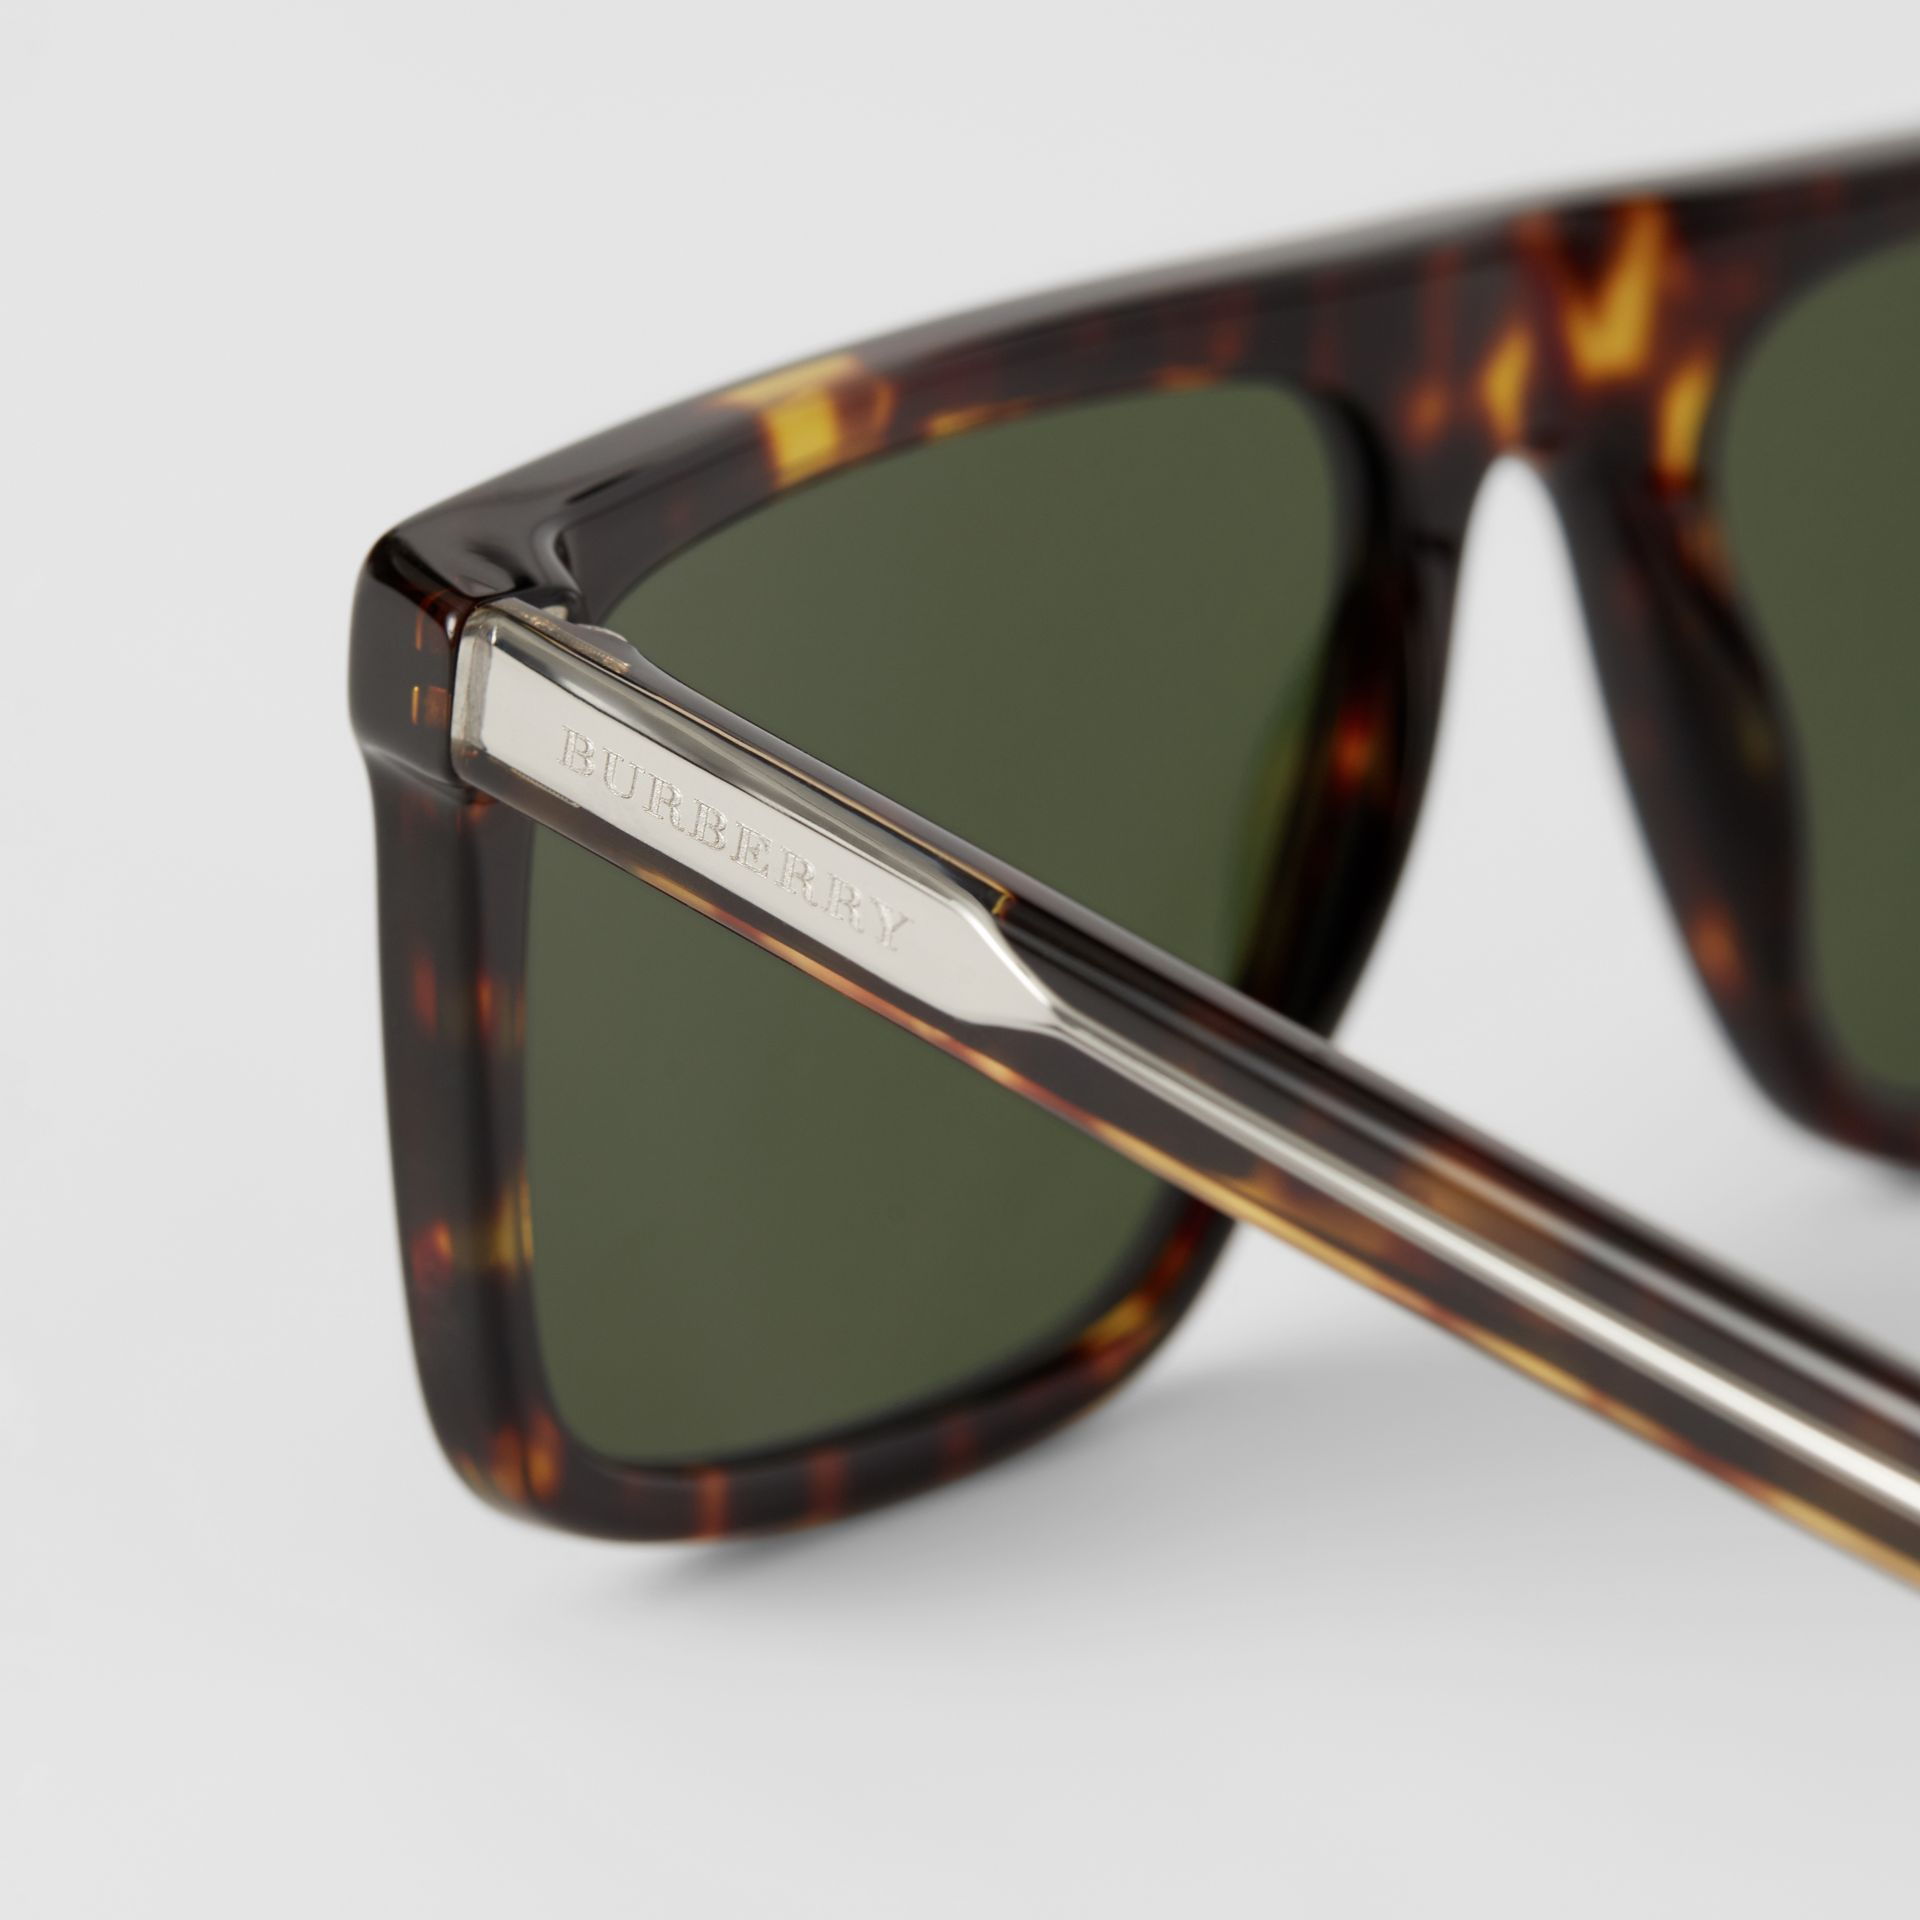 Straight-brow Sunglasses in Tortoise Shell - Men | Burberry - gallery image 1